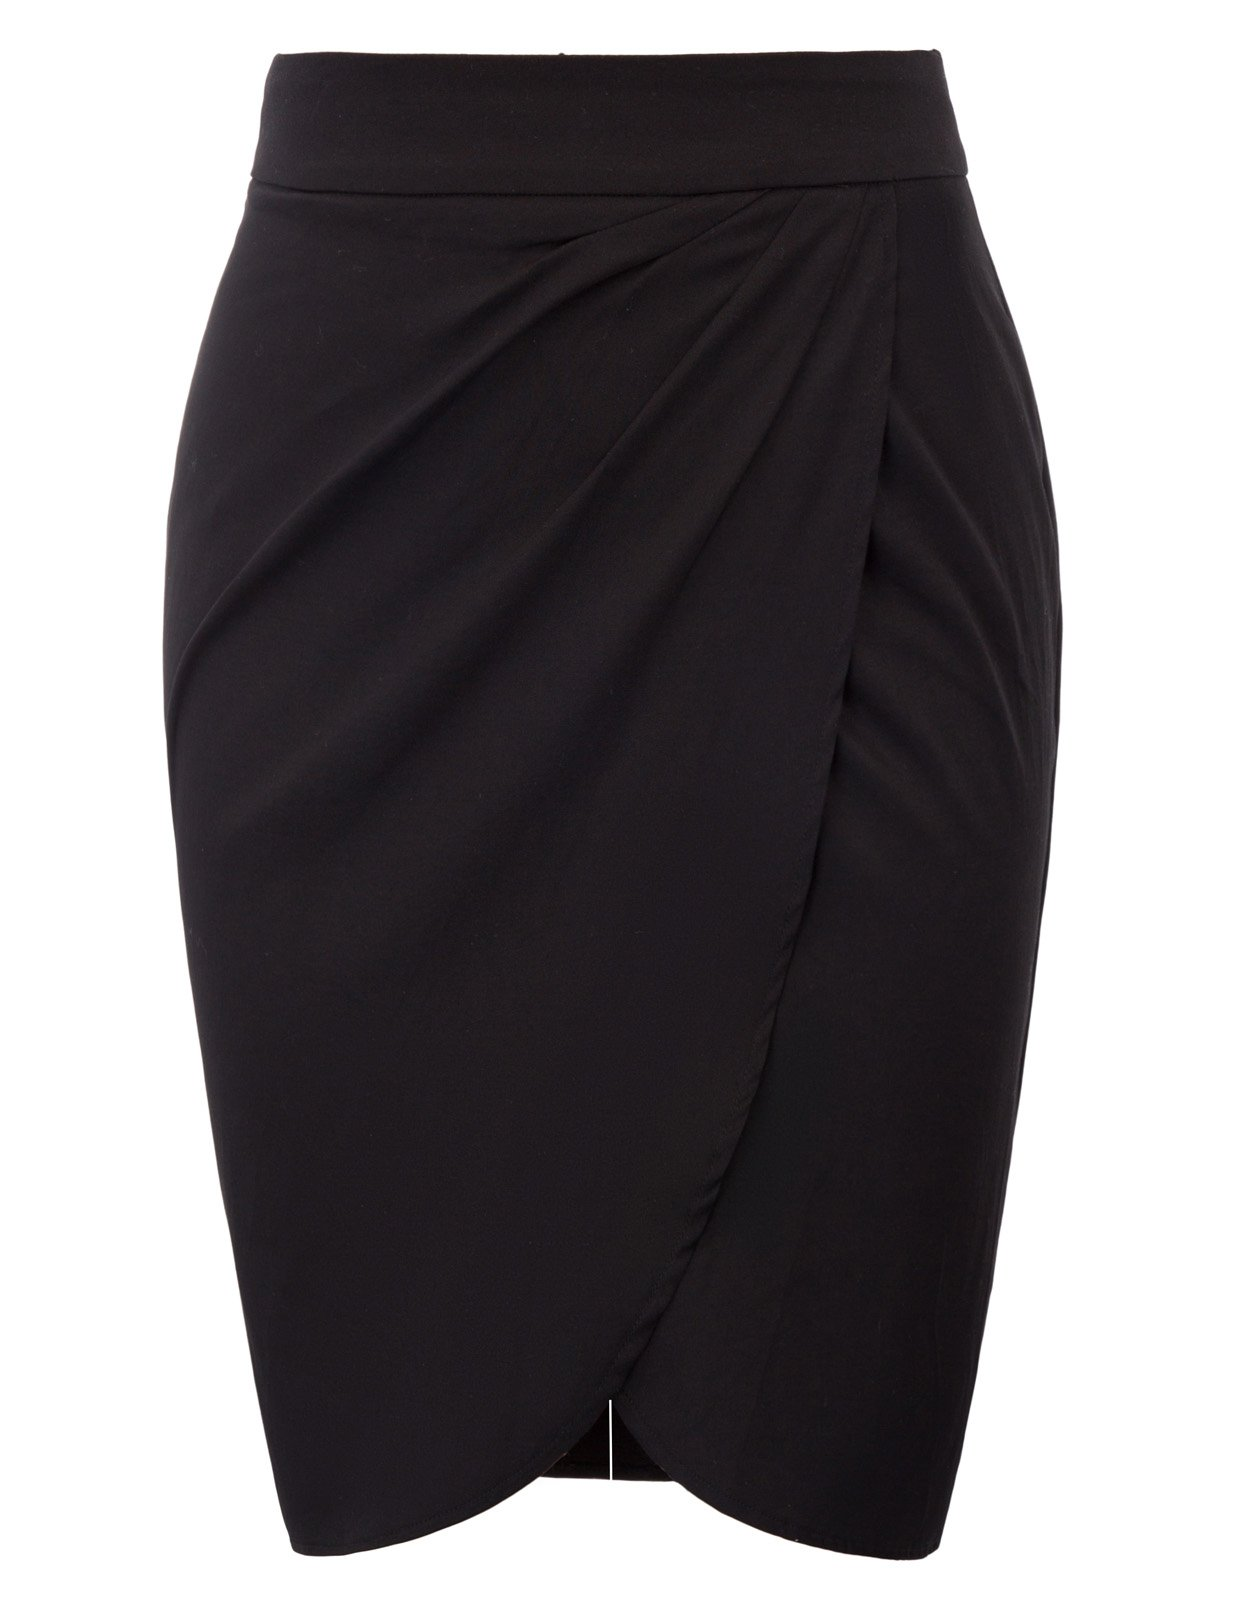 Belle Poque Black Formal Office Work Knee Length Skirts Medium BP598-1